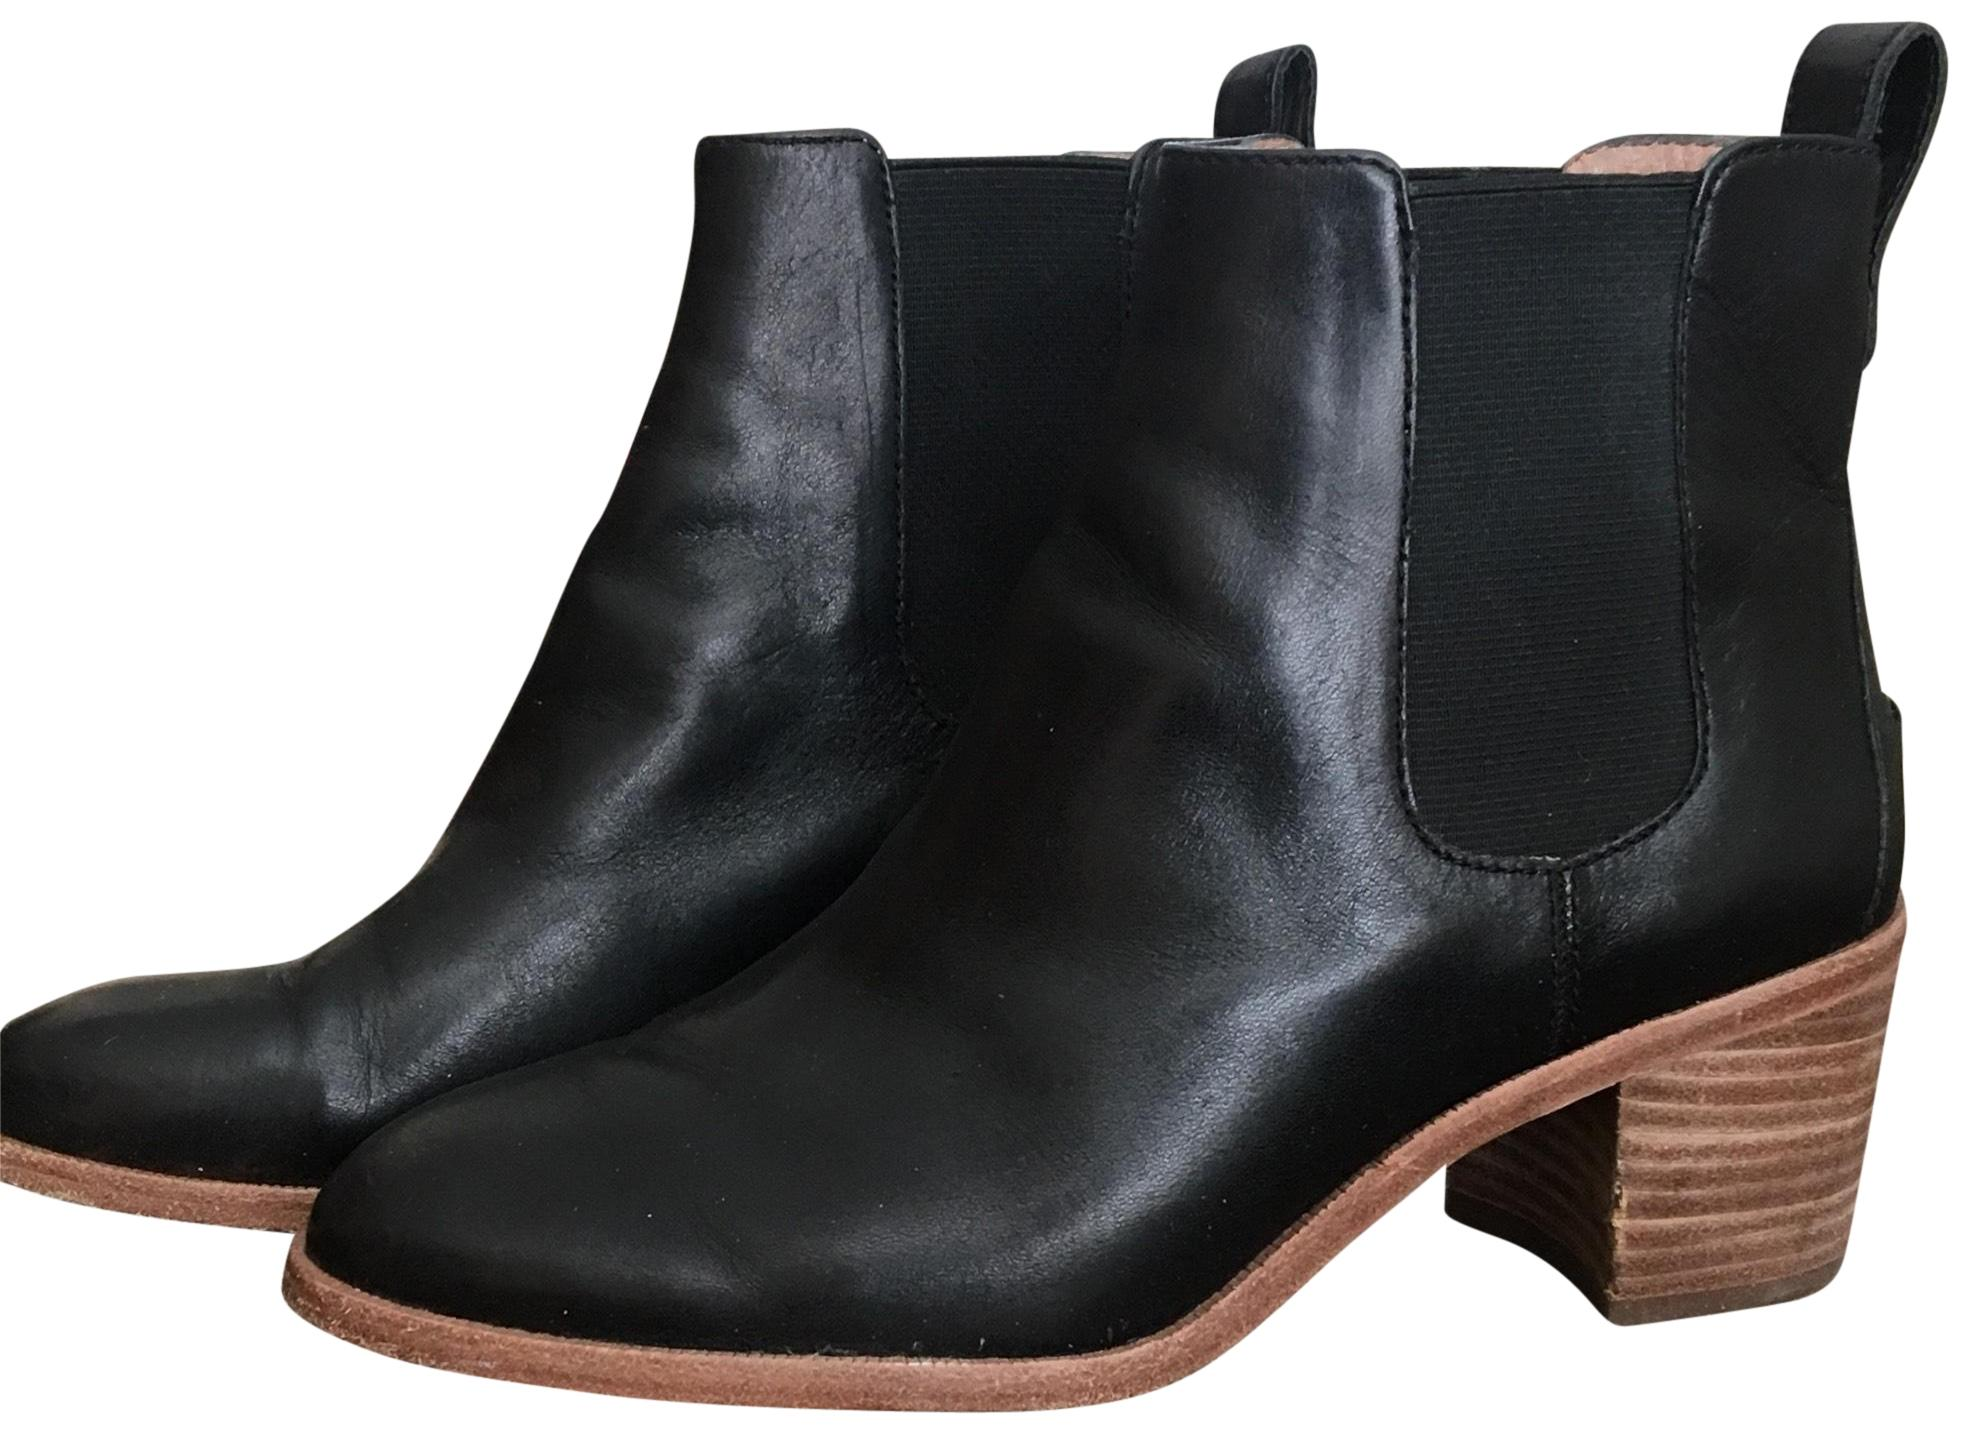 Madewell Black Chunky Heel (M, Ankle Boots/Booties Size US 7 Regular (M, Heel B) 0a53a8